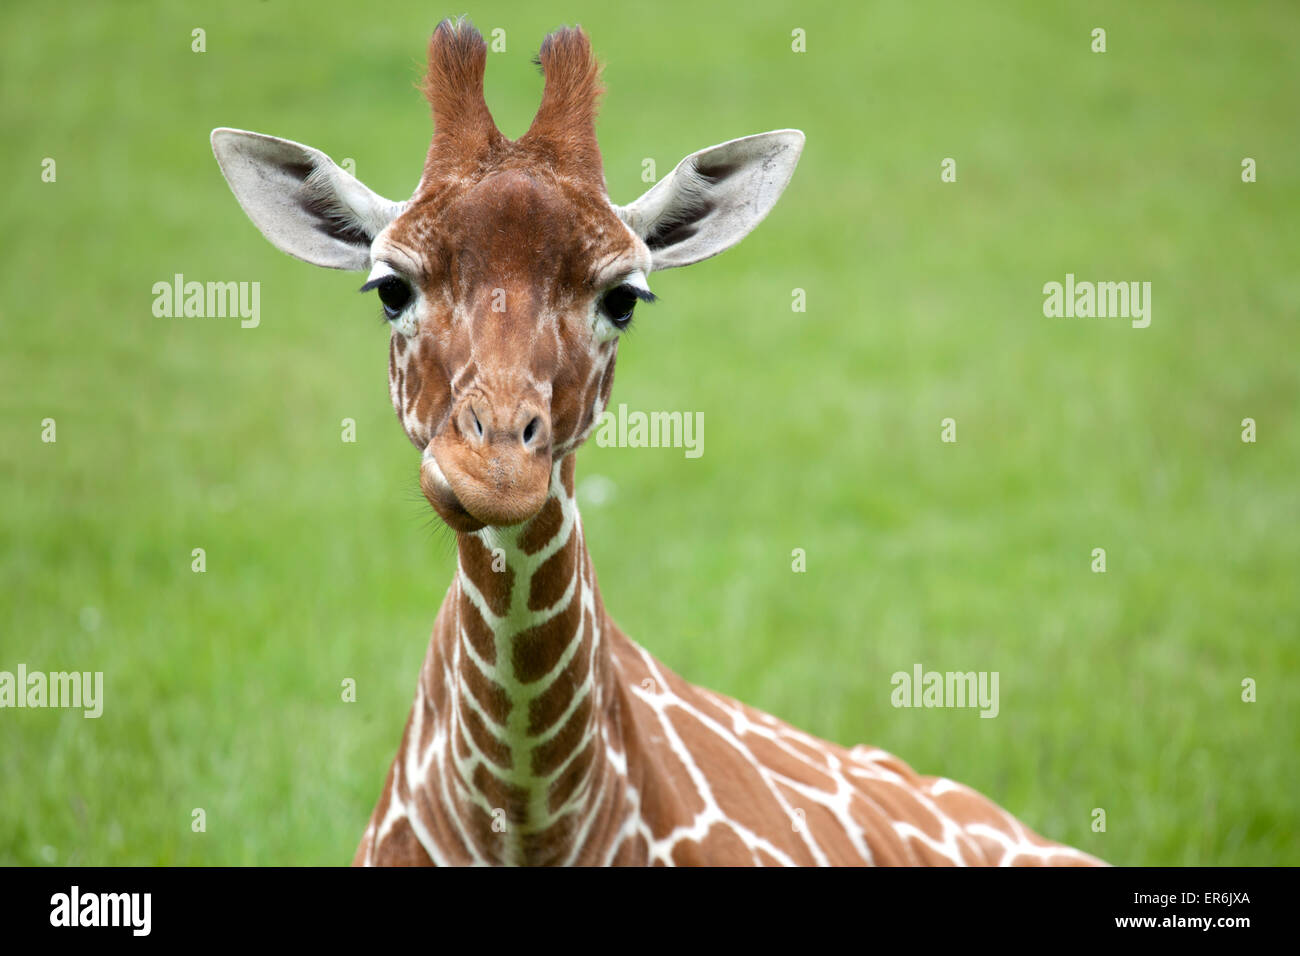 Reticulated Giraffe head with space on right for text Stock Photo